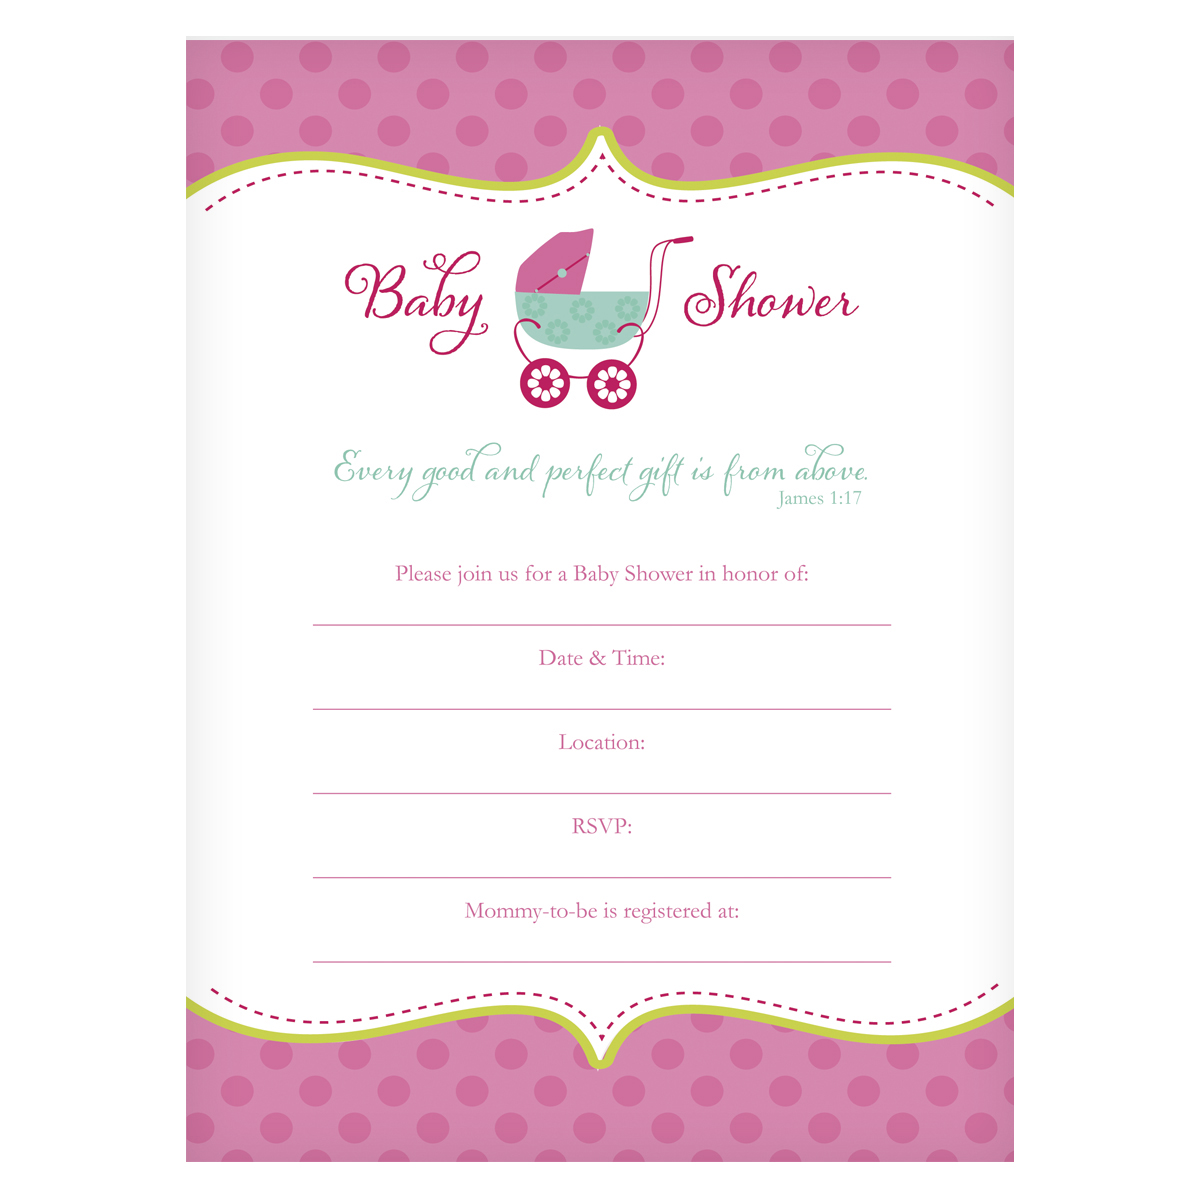 INV001_1 front?resizeid=5&resizeh=1200&resizew=1200 baby shower invitation girl james 1 17 christian art gifts,Religious Baby Shower Invitations